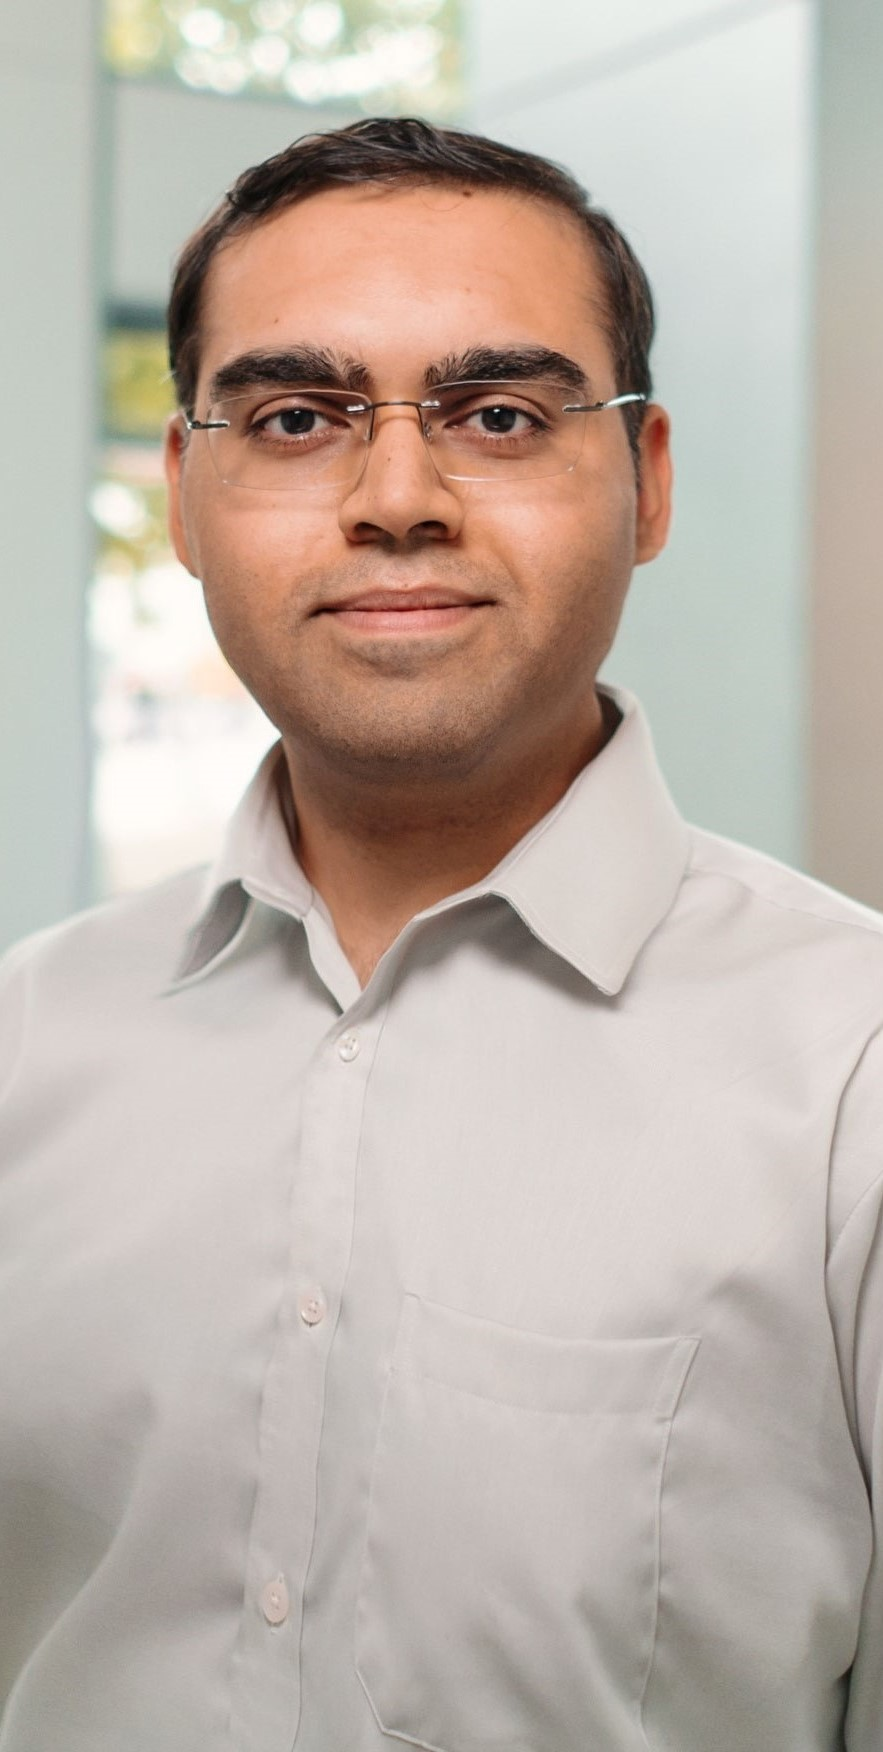 Sujay Charania, Institute of semiconductors and microsystems, TU Dresden